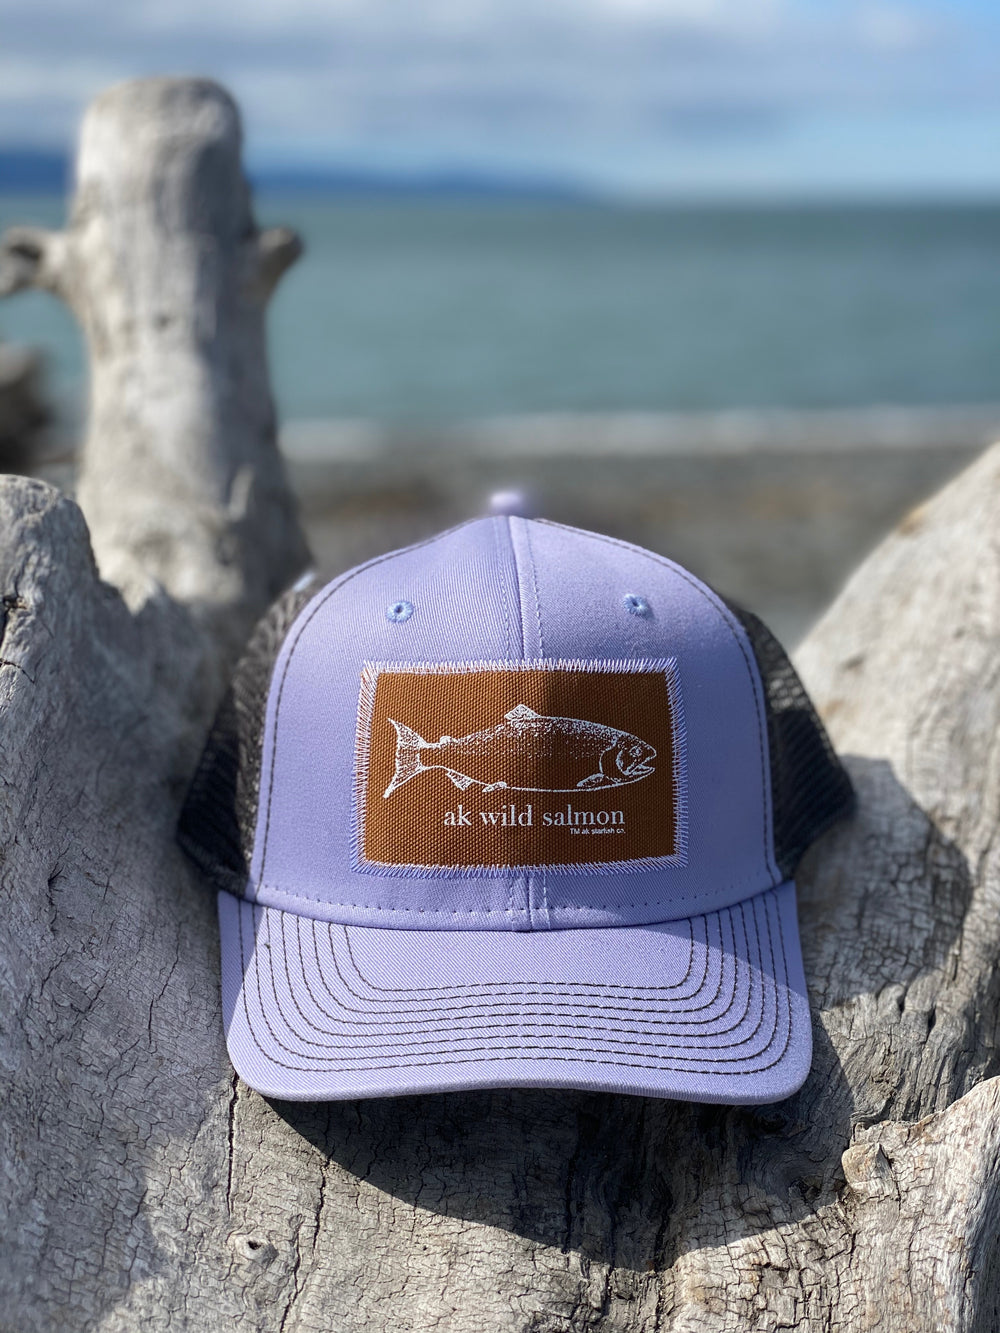 Alpenglow and Slate AK Wild Salmon Patch Hat $35.00